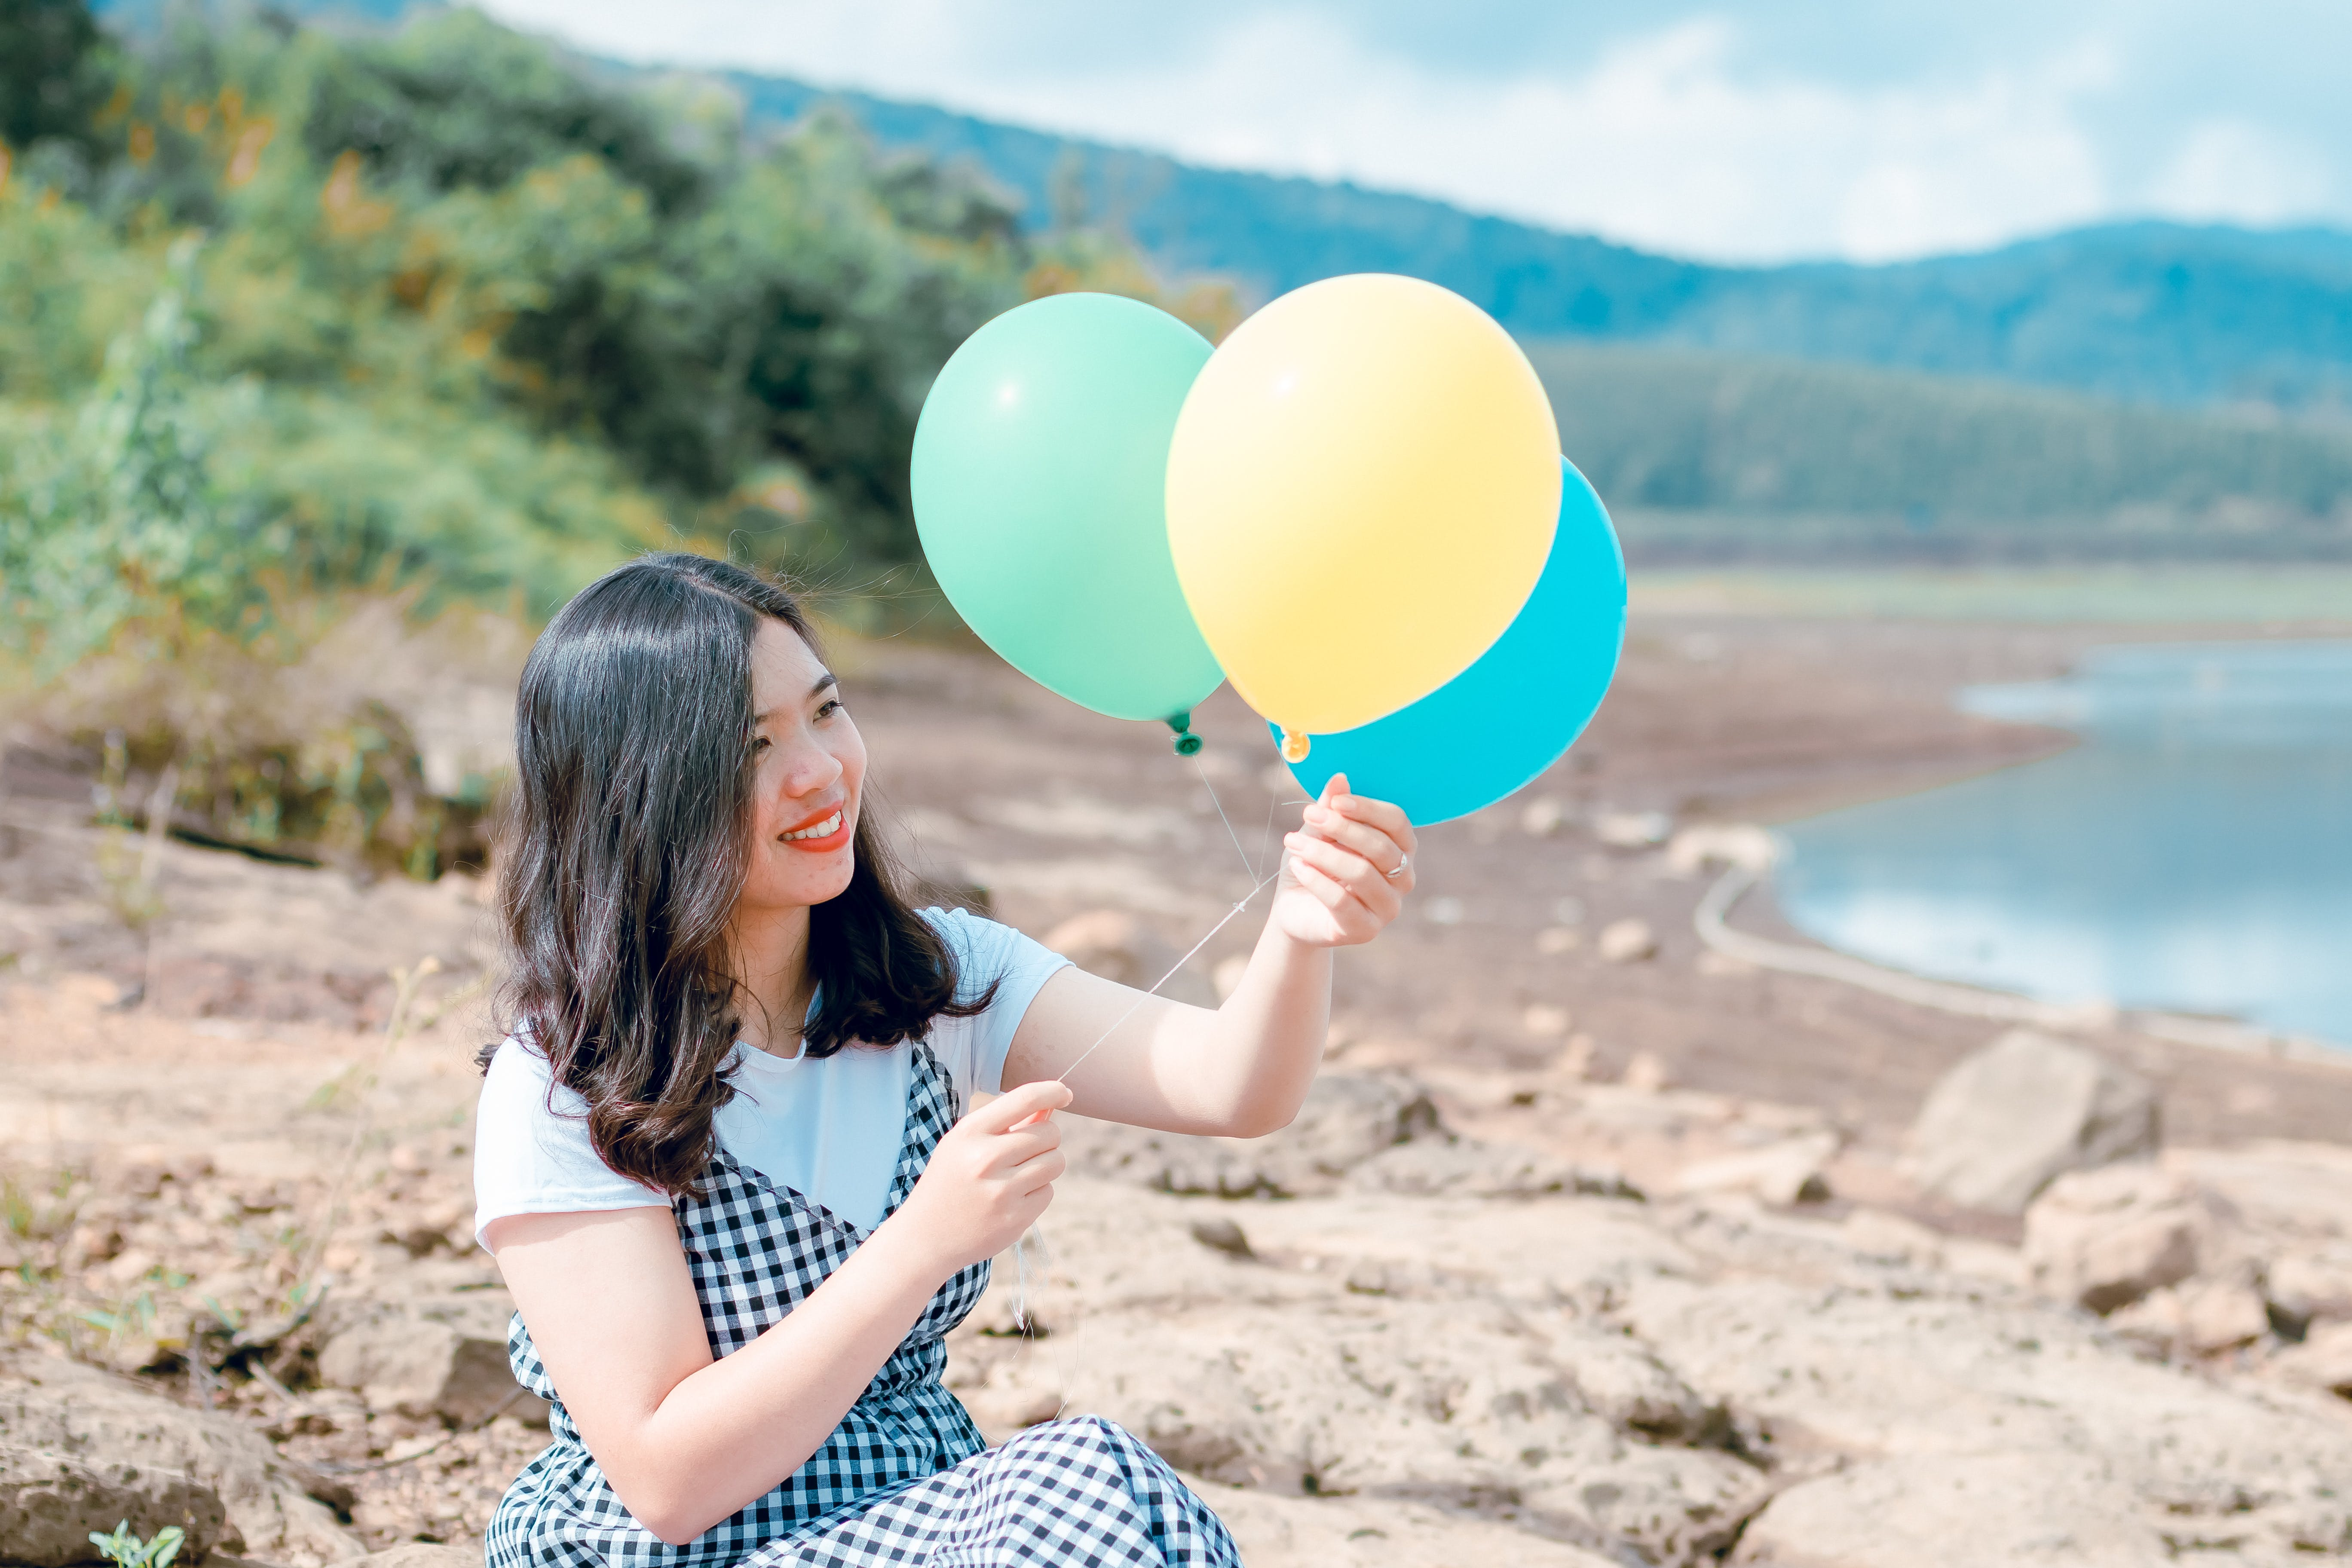 Woman in White and Black Dress Holding Three Balloons